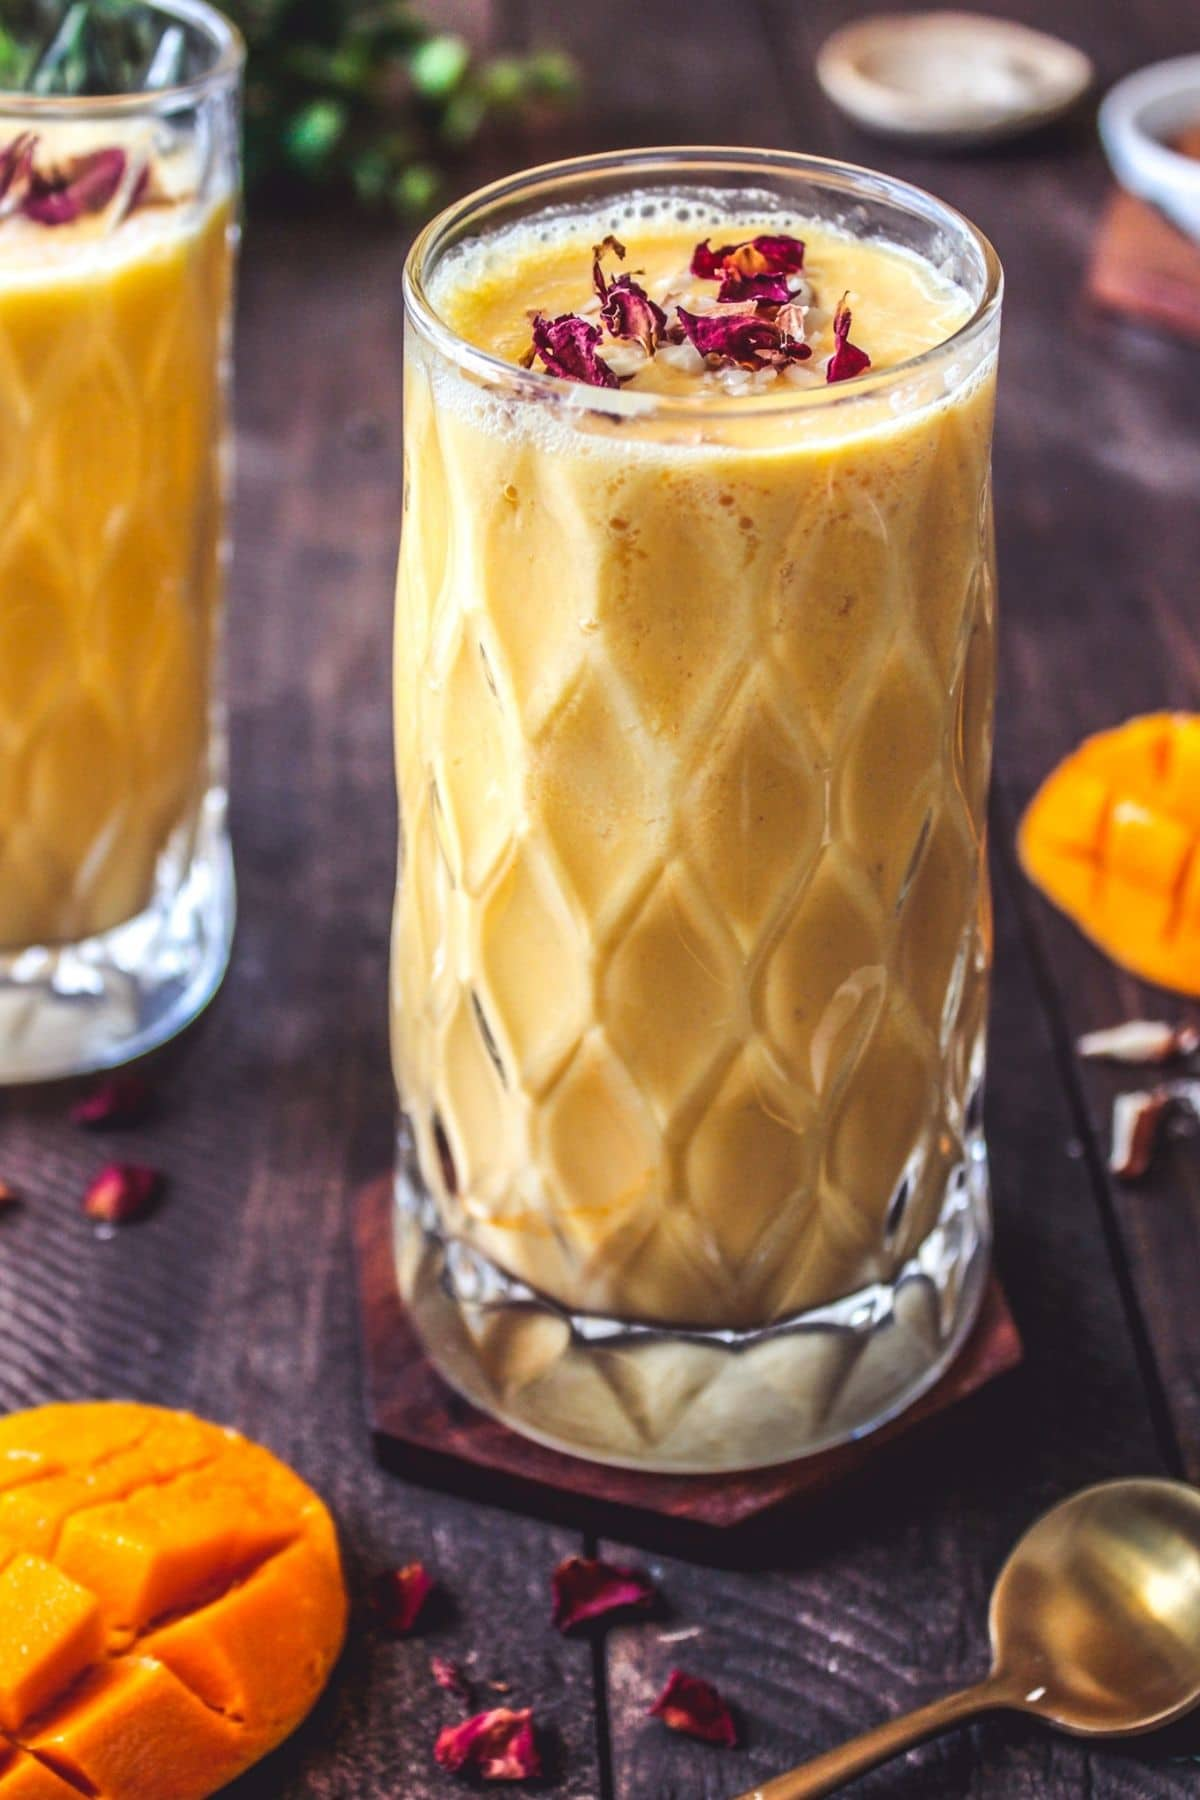 Beveled glasses of mango lassi with rose petals on top